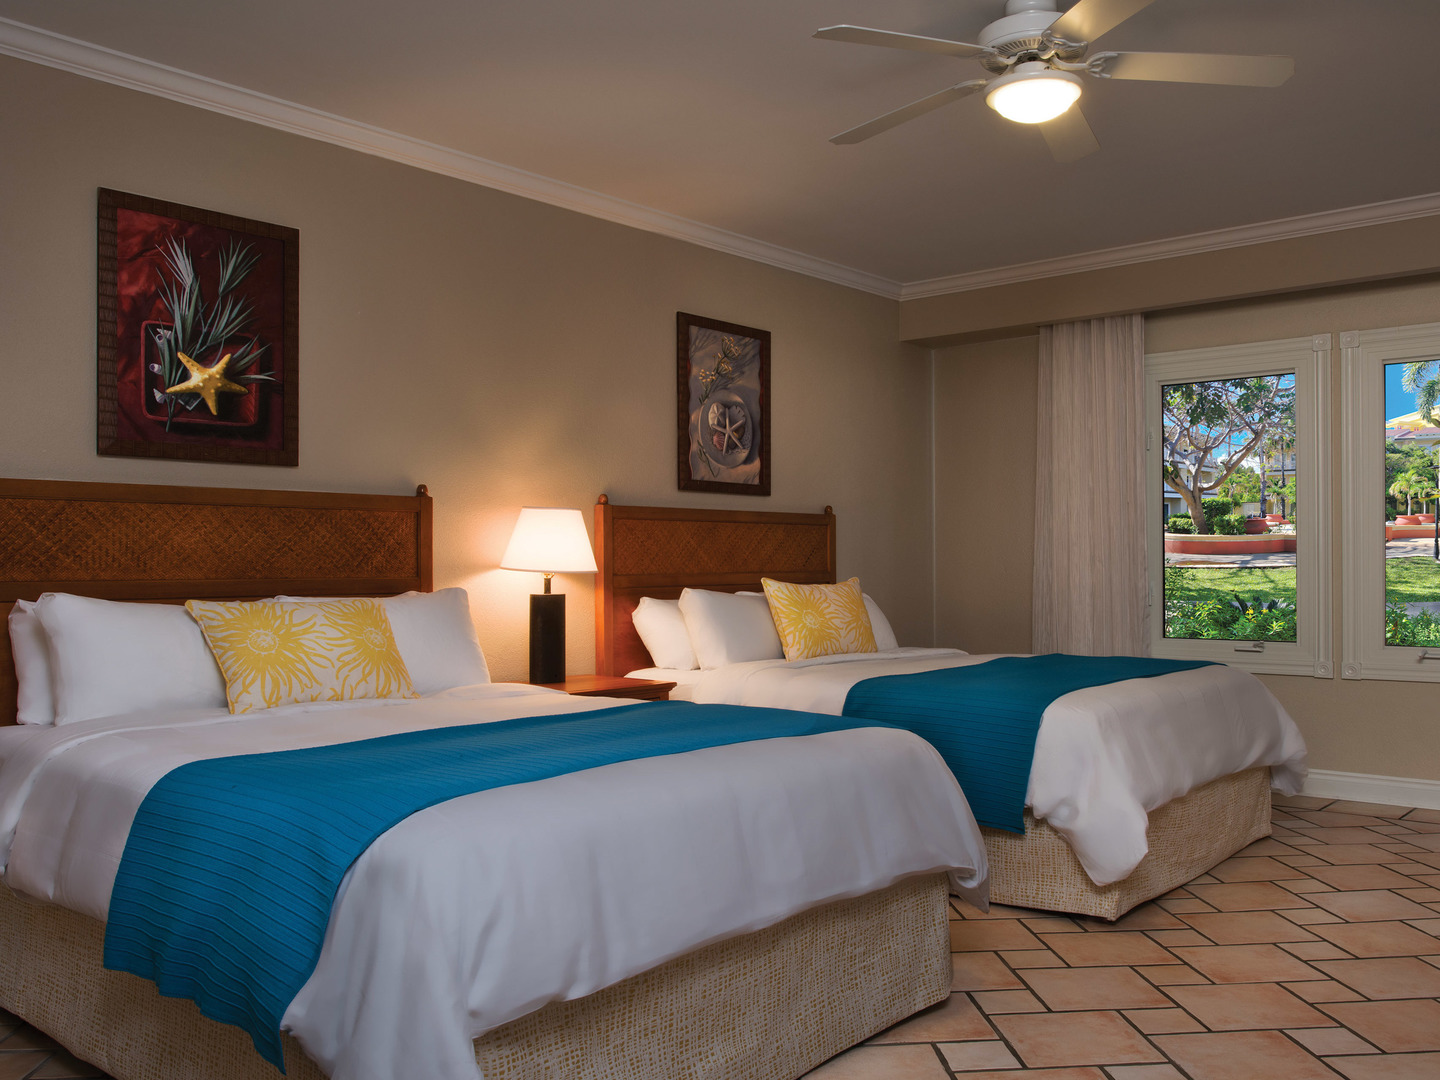 Marriott's St. Kitts Beach Club Villa Guest Bedroom - Double Double. Marriott's St. Kitts Beach Club is located in St. Kitts,  St. Kitts and Nevis.